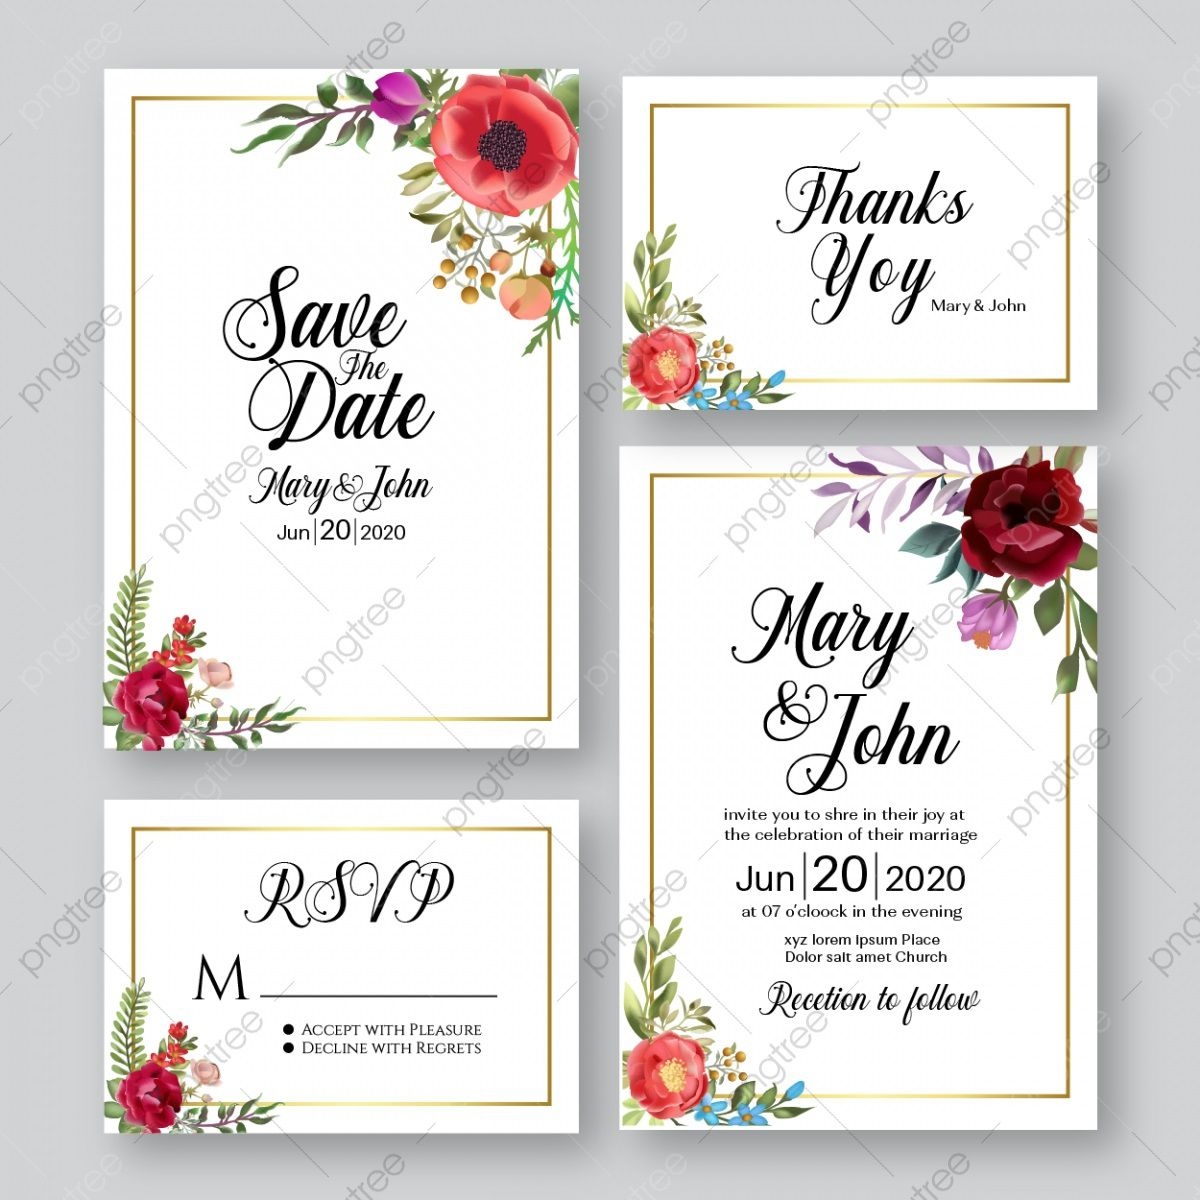 009 Excellent Free Download Invitation Card Template Highest Clarity  Templates Indian Wedding Design Software PngFull